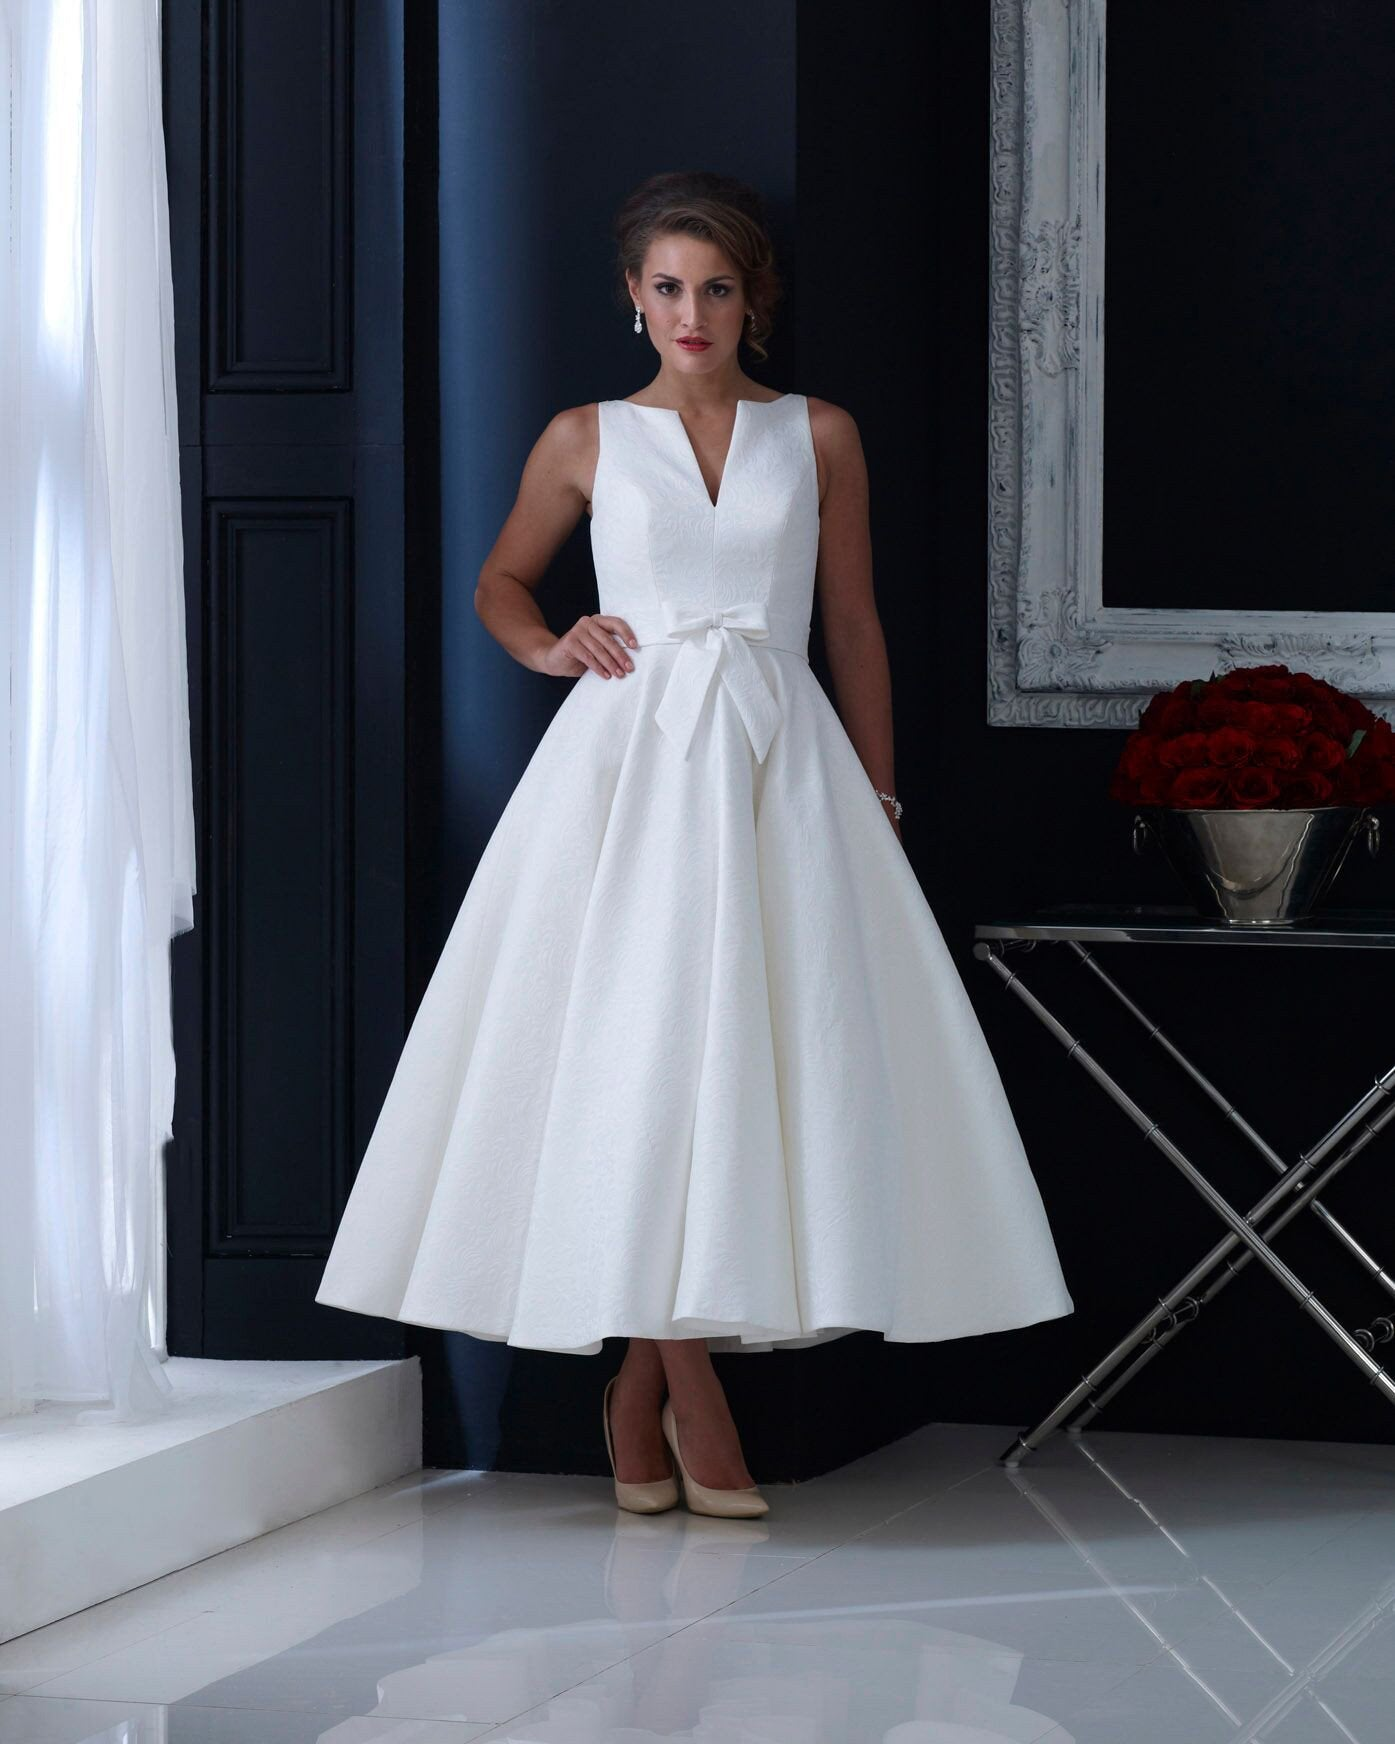 hn-veronica Brocade tea length wedding dress with subtle bow and elegant cut